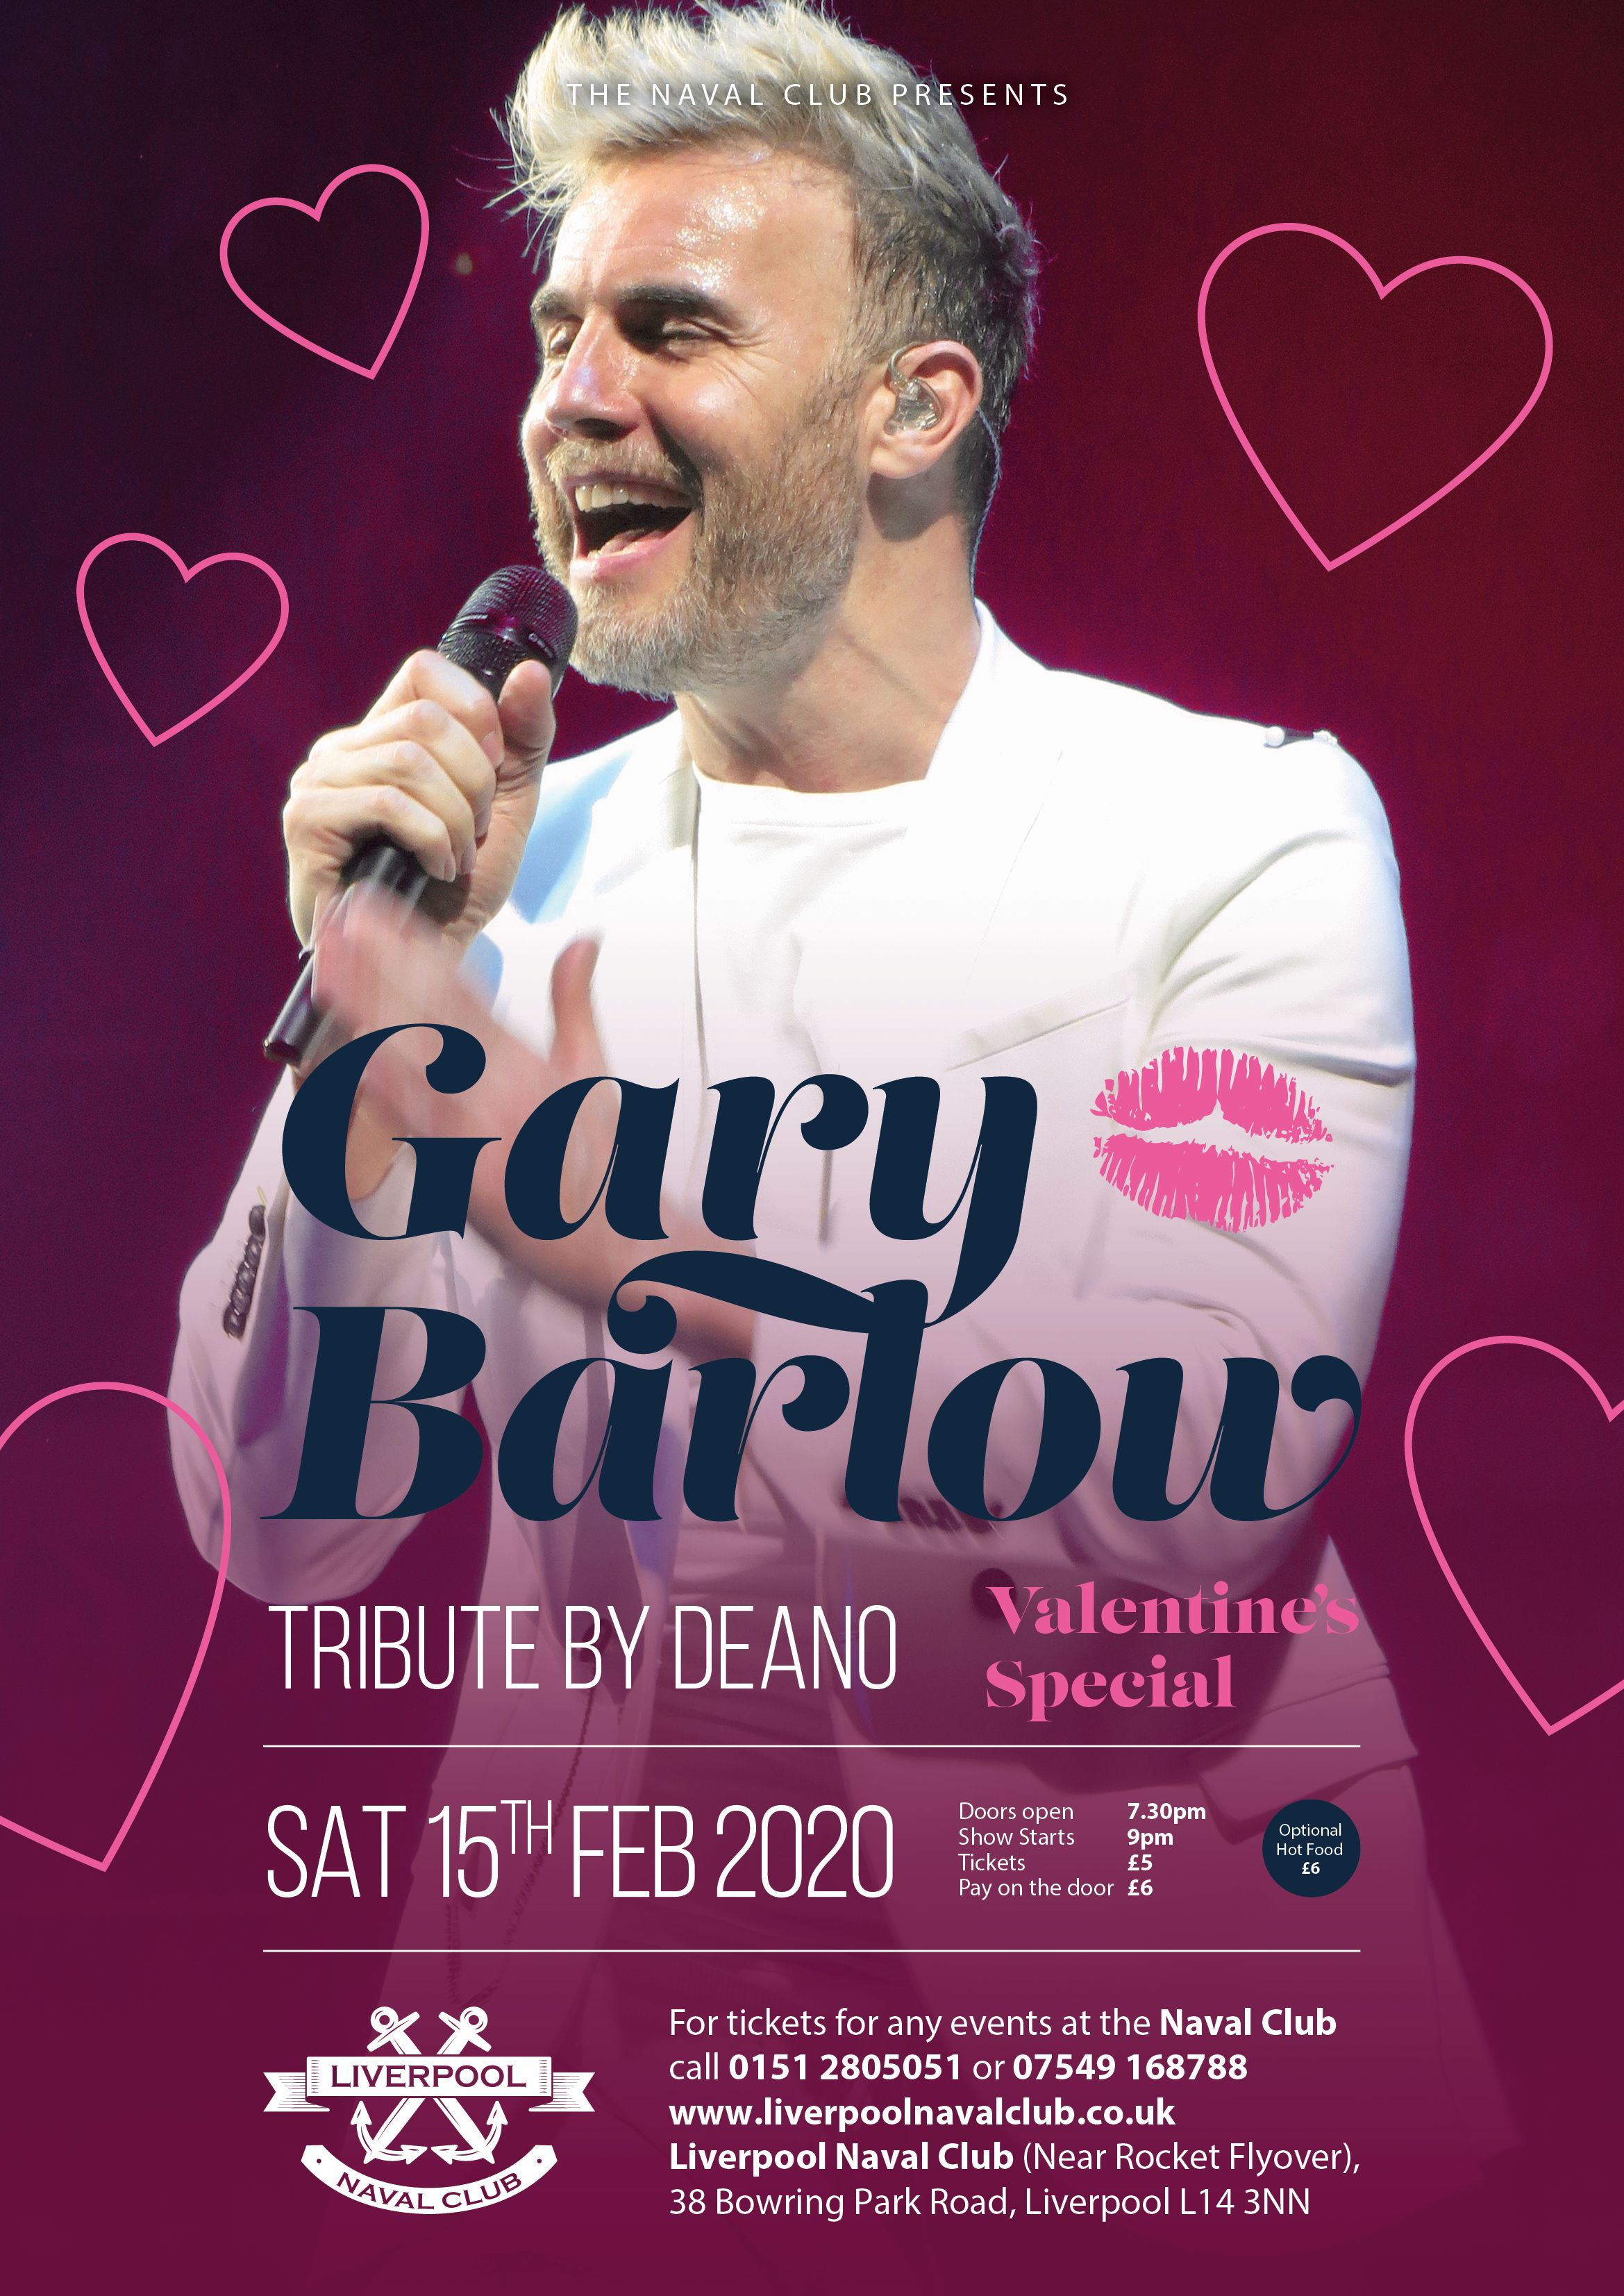 Valentines Special - Ultimate Gary Barlow Tribute - by Deano